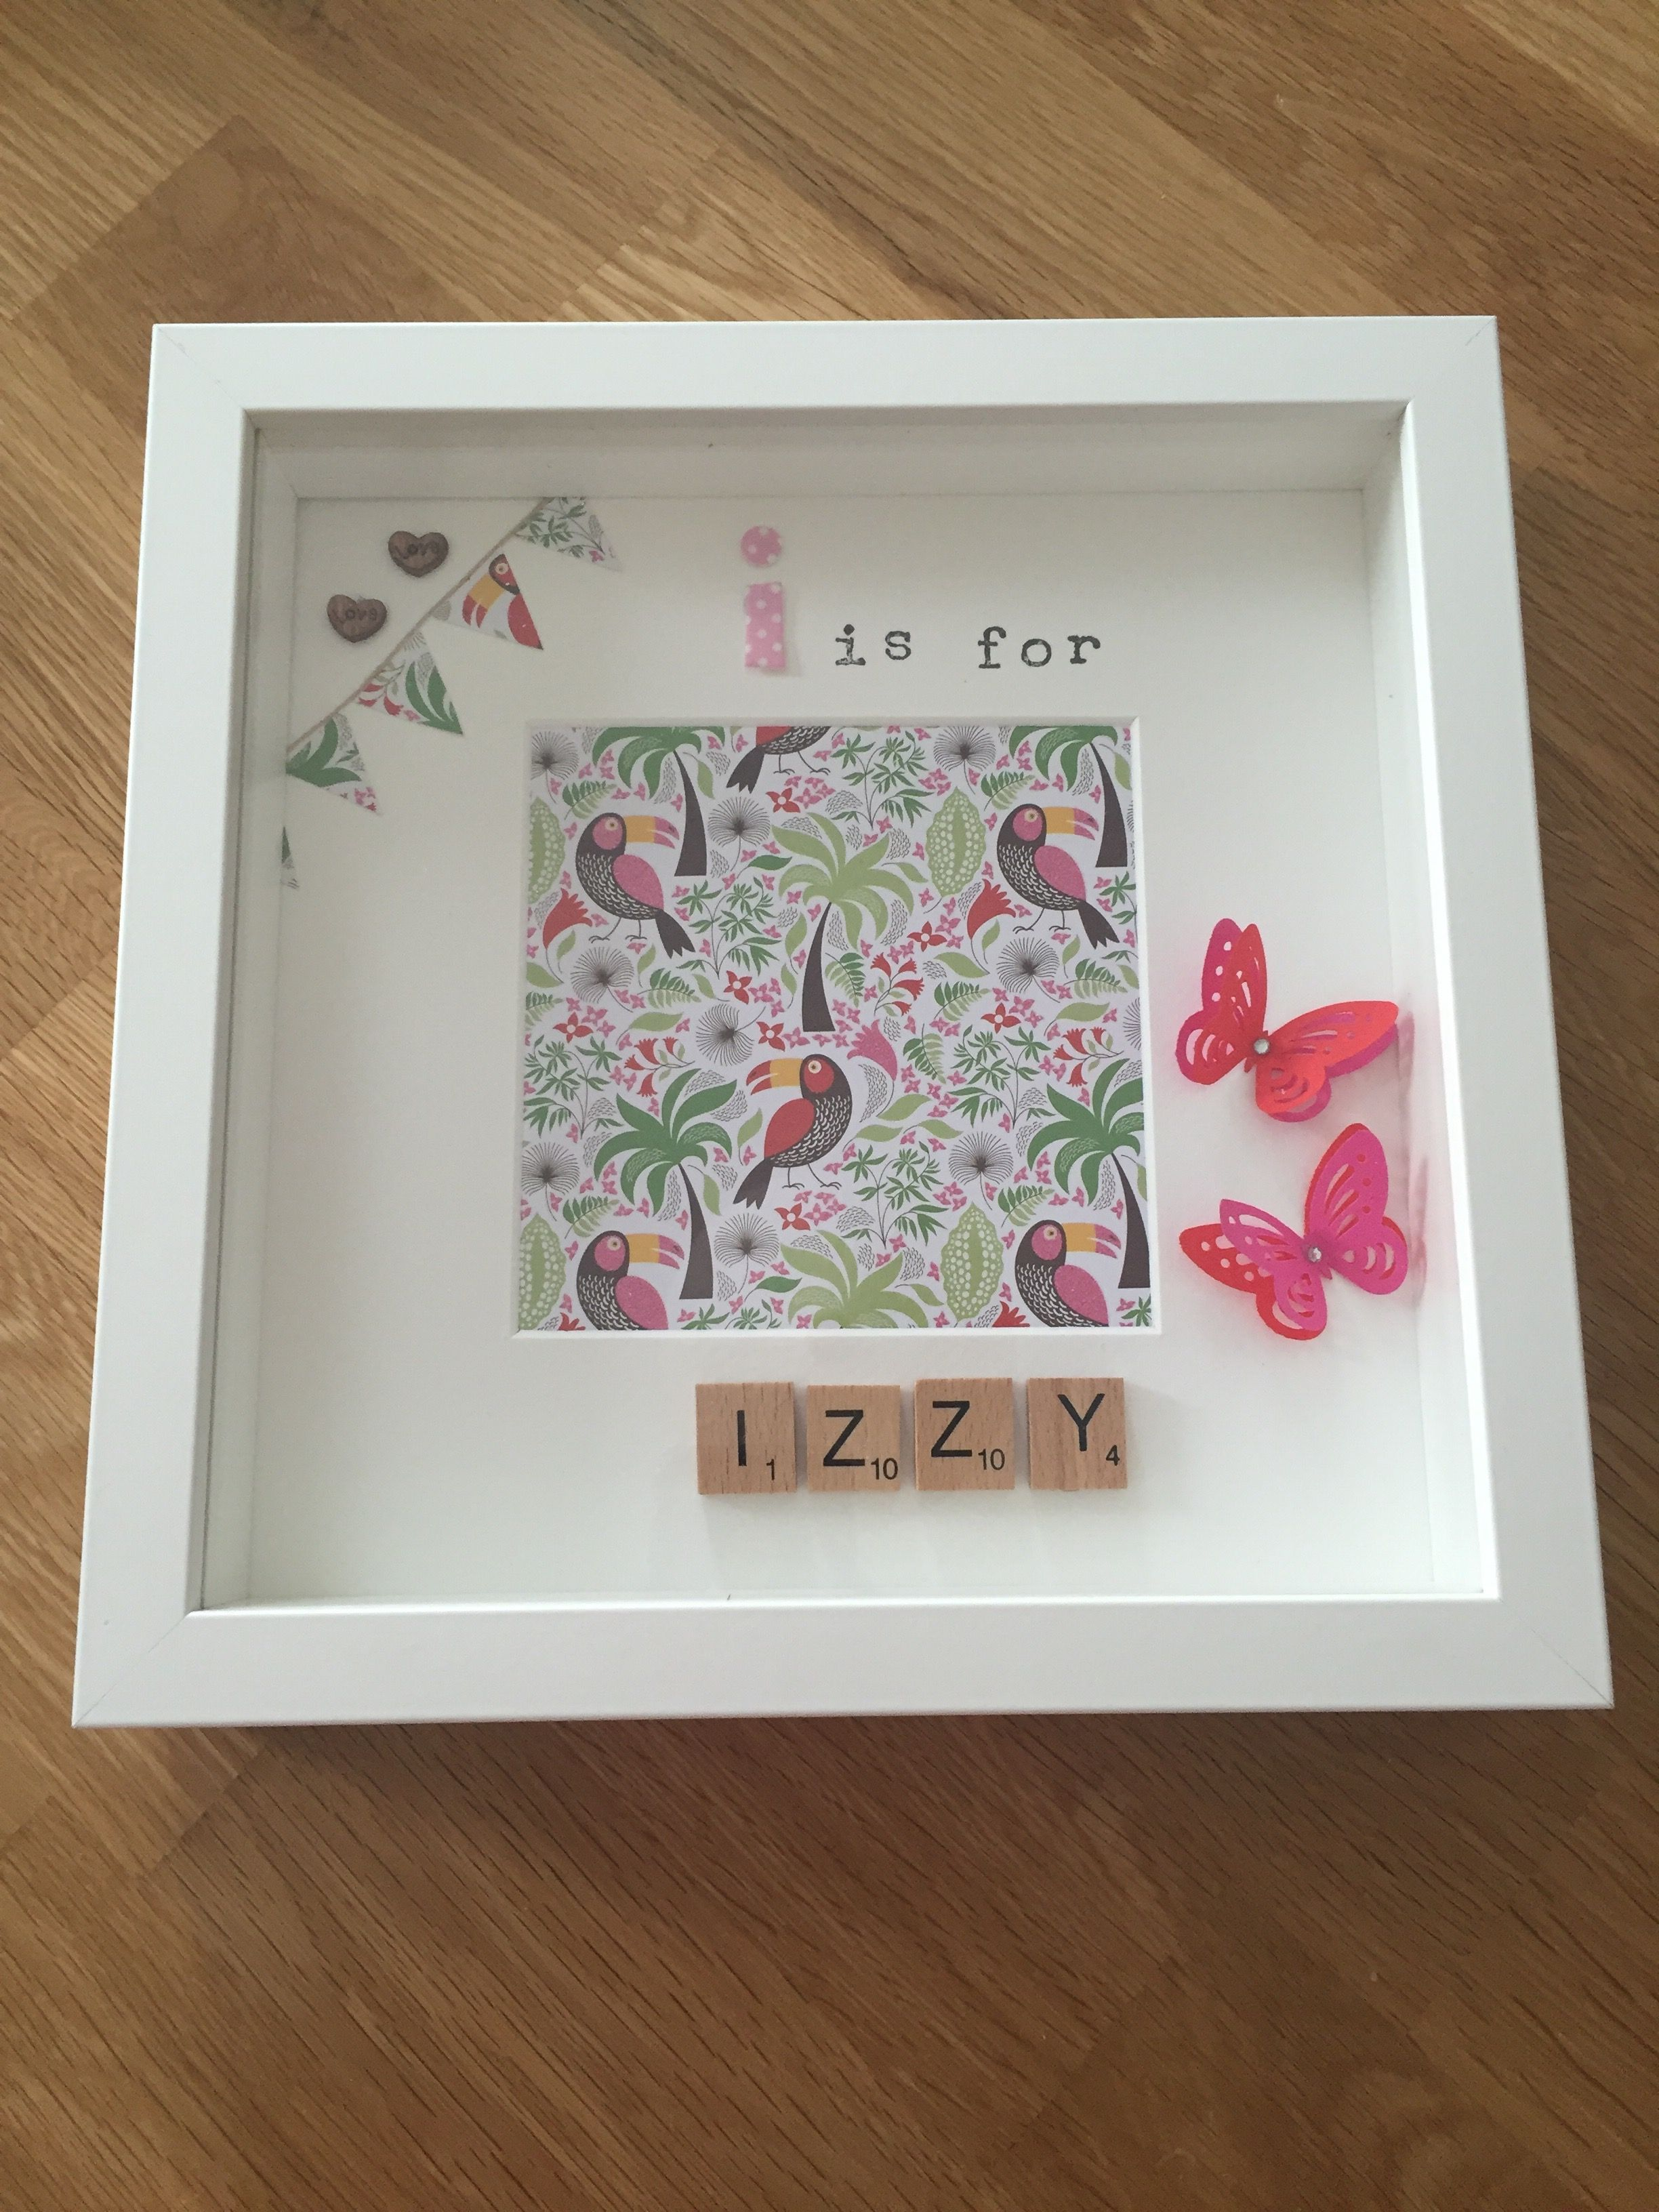 I is for Izzy - personalised memory frame / scrabble letters ...